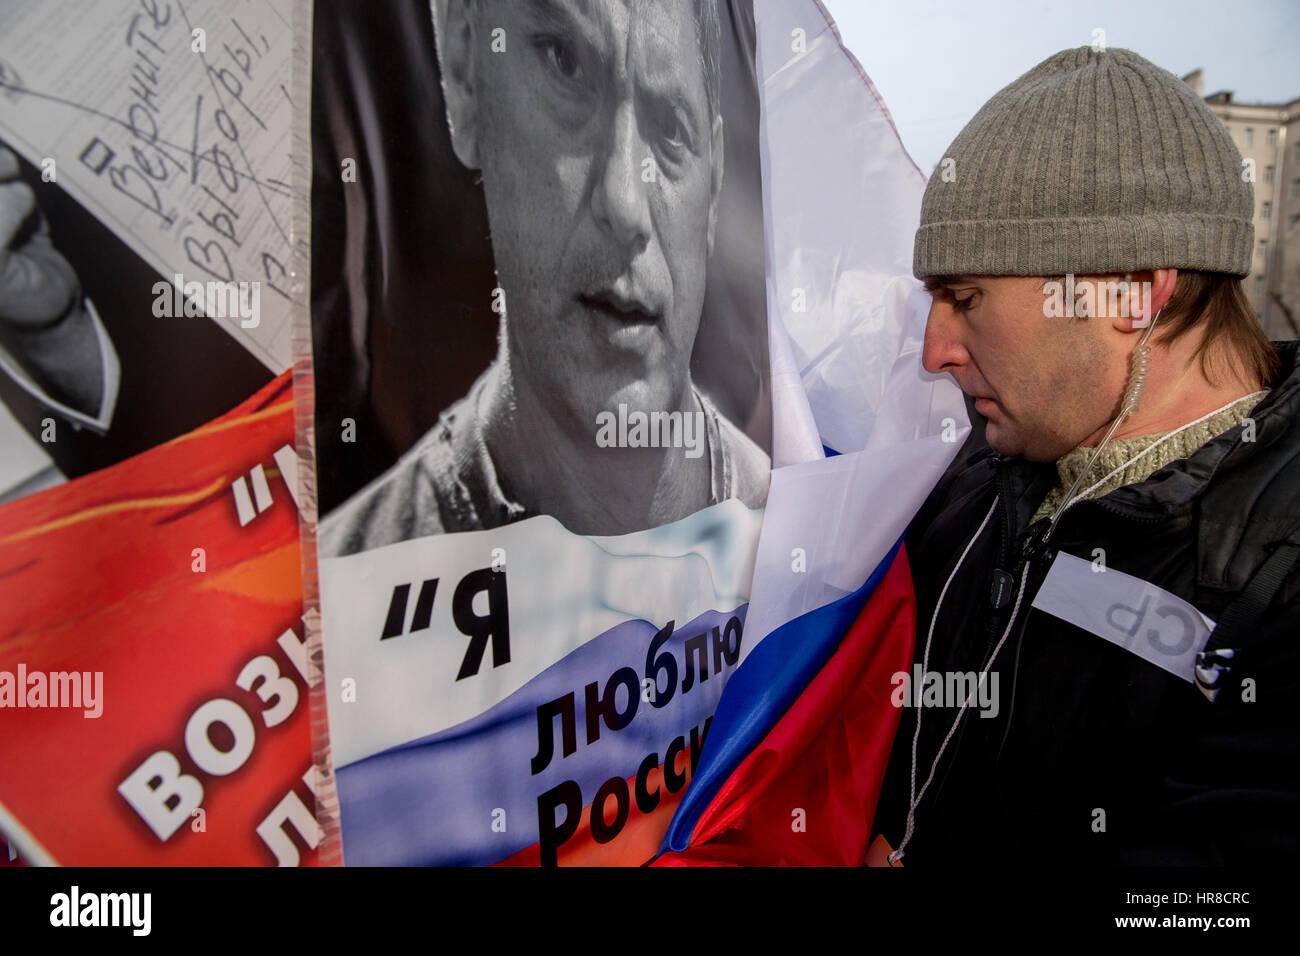 Moscow, Russia. 26th February 2017. A participant in a march in memory of Russian politician Boris Nemtsov on the - Stock Image